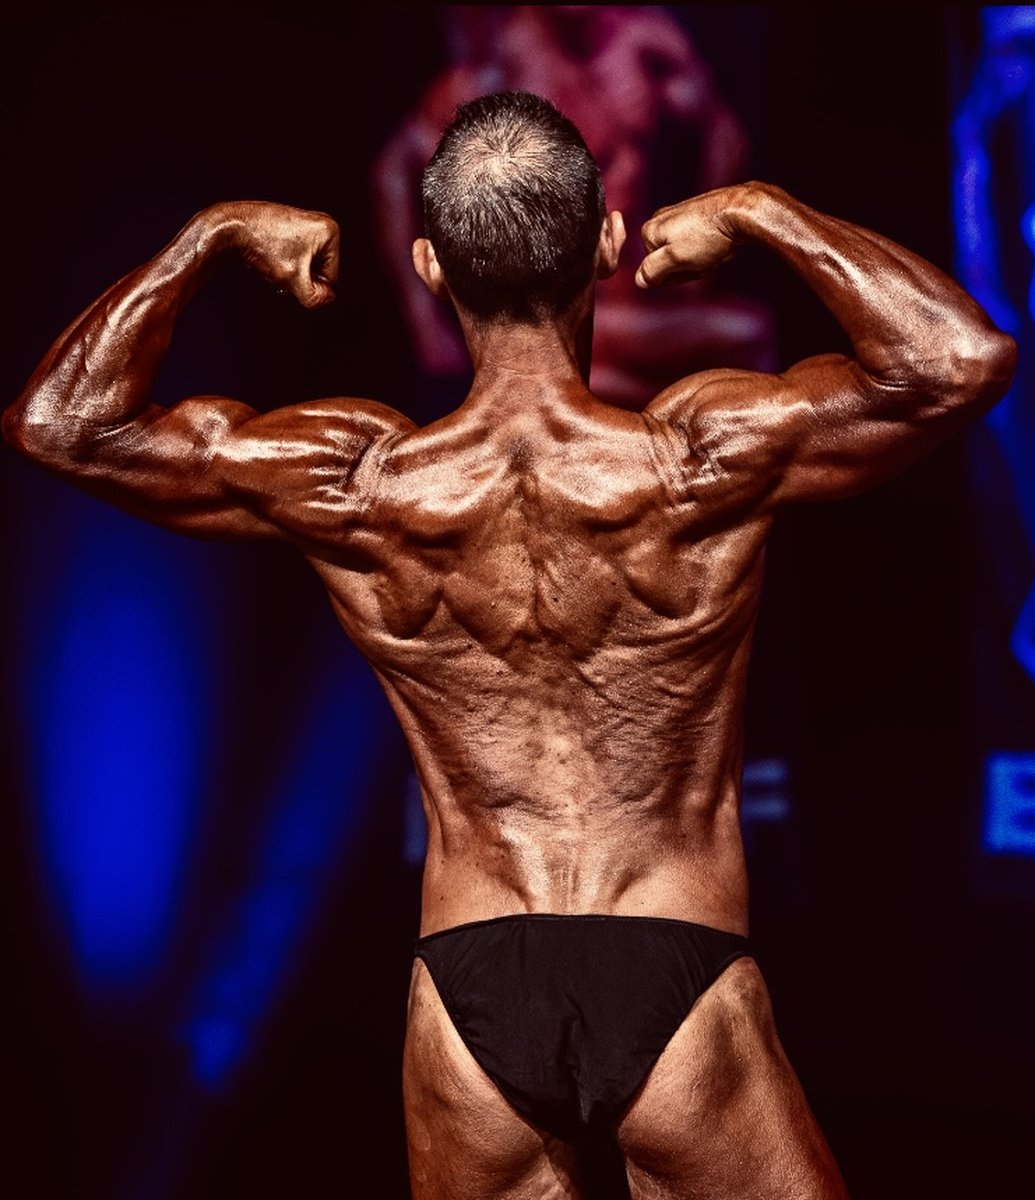 image of image: 26 of 32Tim poses at the 2019 BNBF Central Contest on his way to collect 3<sup>rd</sup> spot in the Over 50s category.